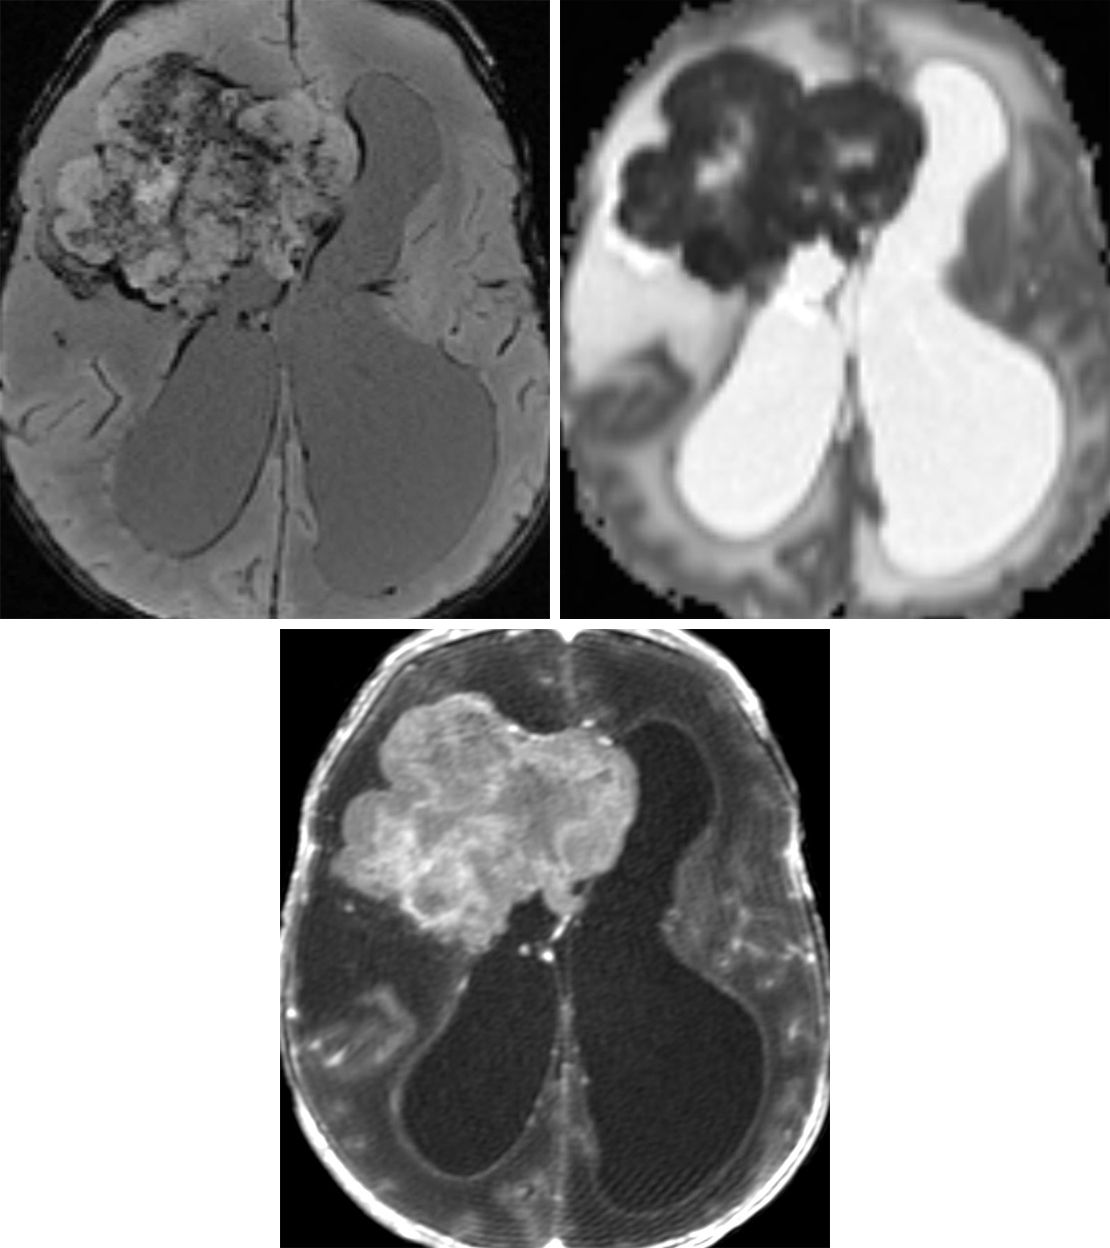 Figure 1: This aggressive-looking right frontal anaplastic ependymoma is in an extraventricular location more typical of the supratentorial ependymoma. (Top Left) As in this lesion, calcifications are common and are visible as low signal intensity on GRE/SWI. (Top Right) This tumor also demonstrates dark restricted diffusion on ADC imaging, representing hypercellularity. (Bottom) Enhancement on postcontrast T1WI is also common.